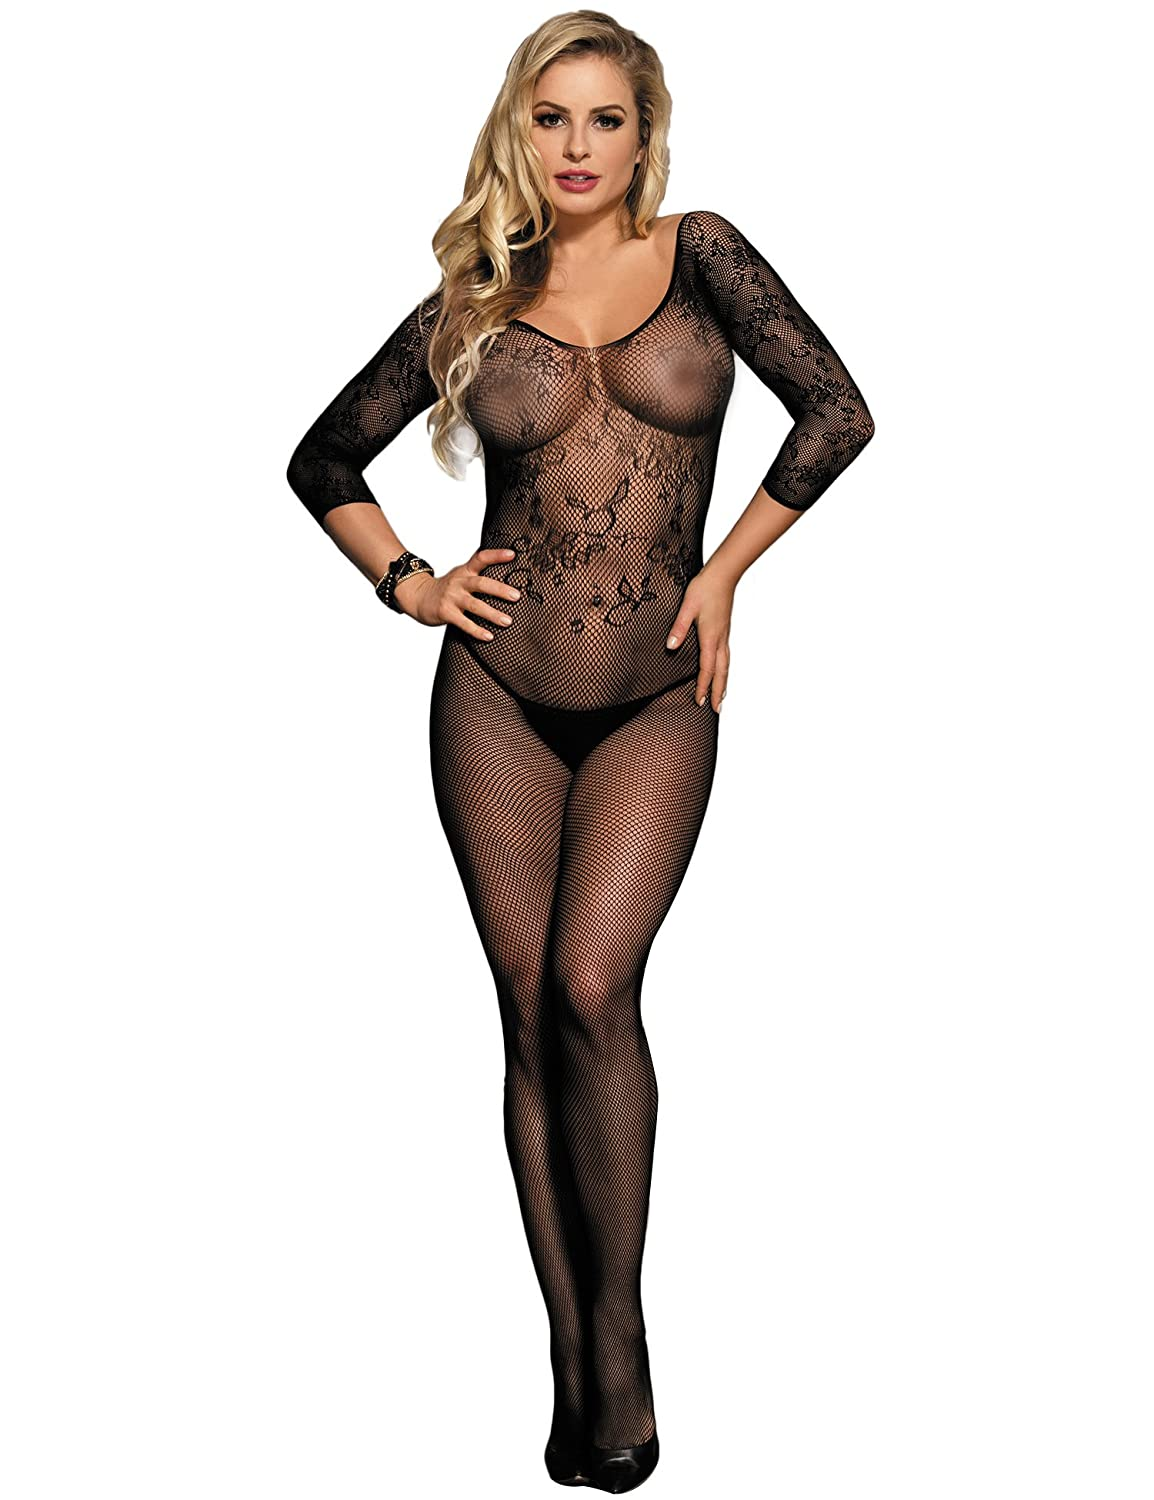 87b466c990f Amazon.com  ohyeah Sexy Lingerie Fishnet Bodysuit Crotchless Tights Sexy  Nightwear Bodystocking for Women  Clothing